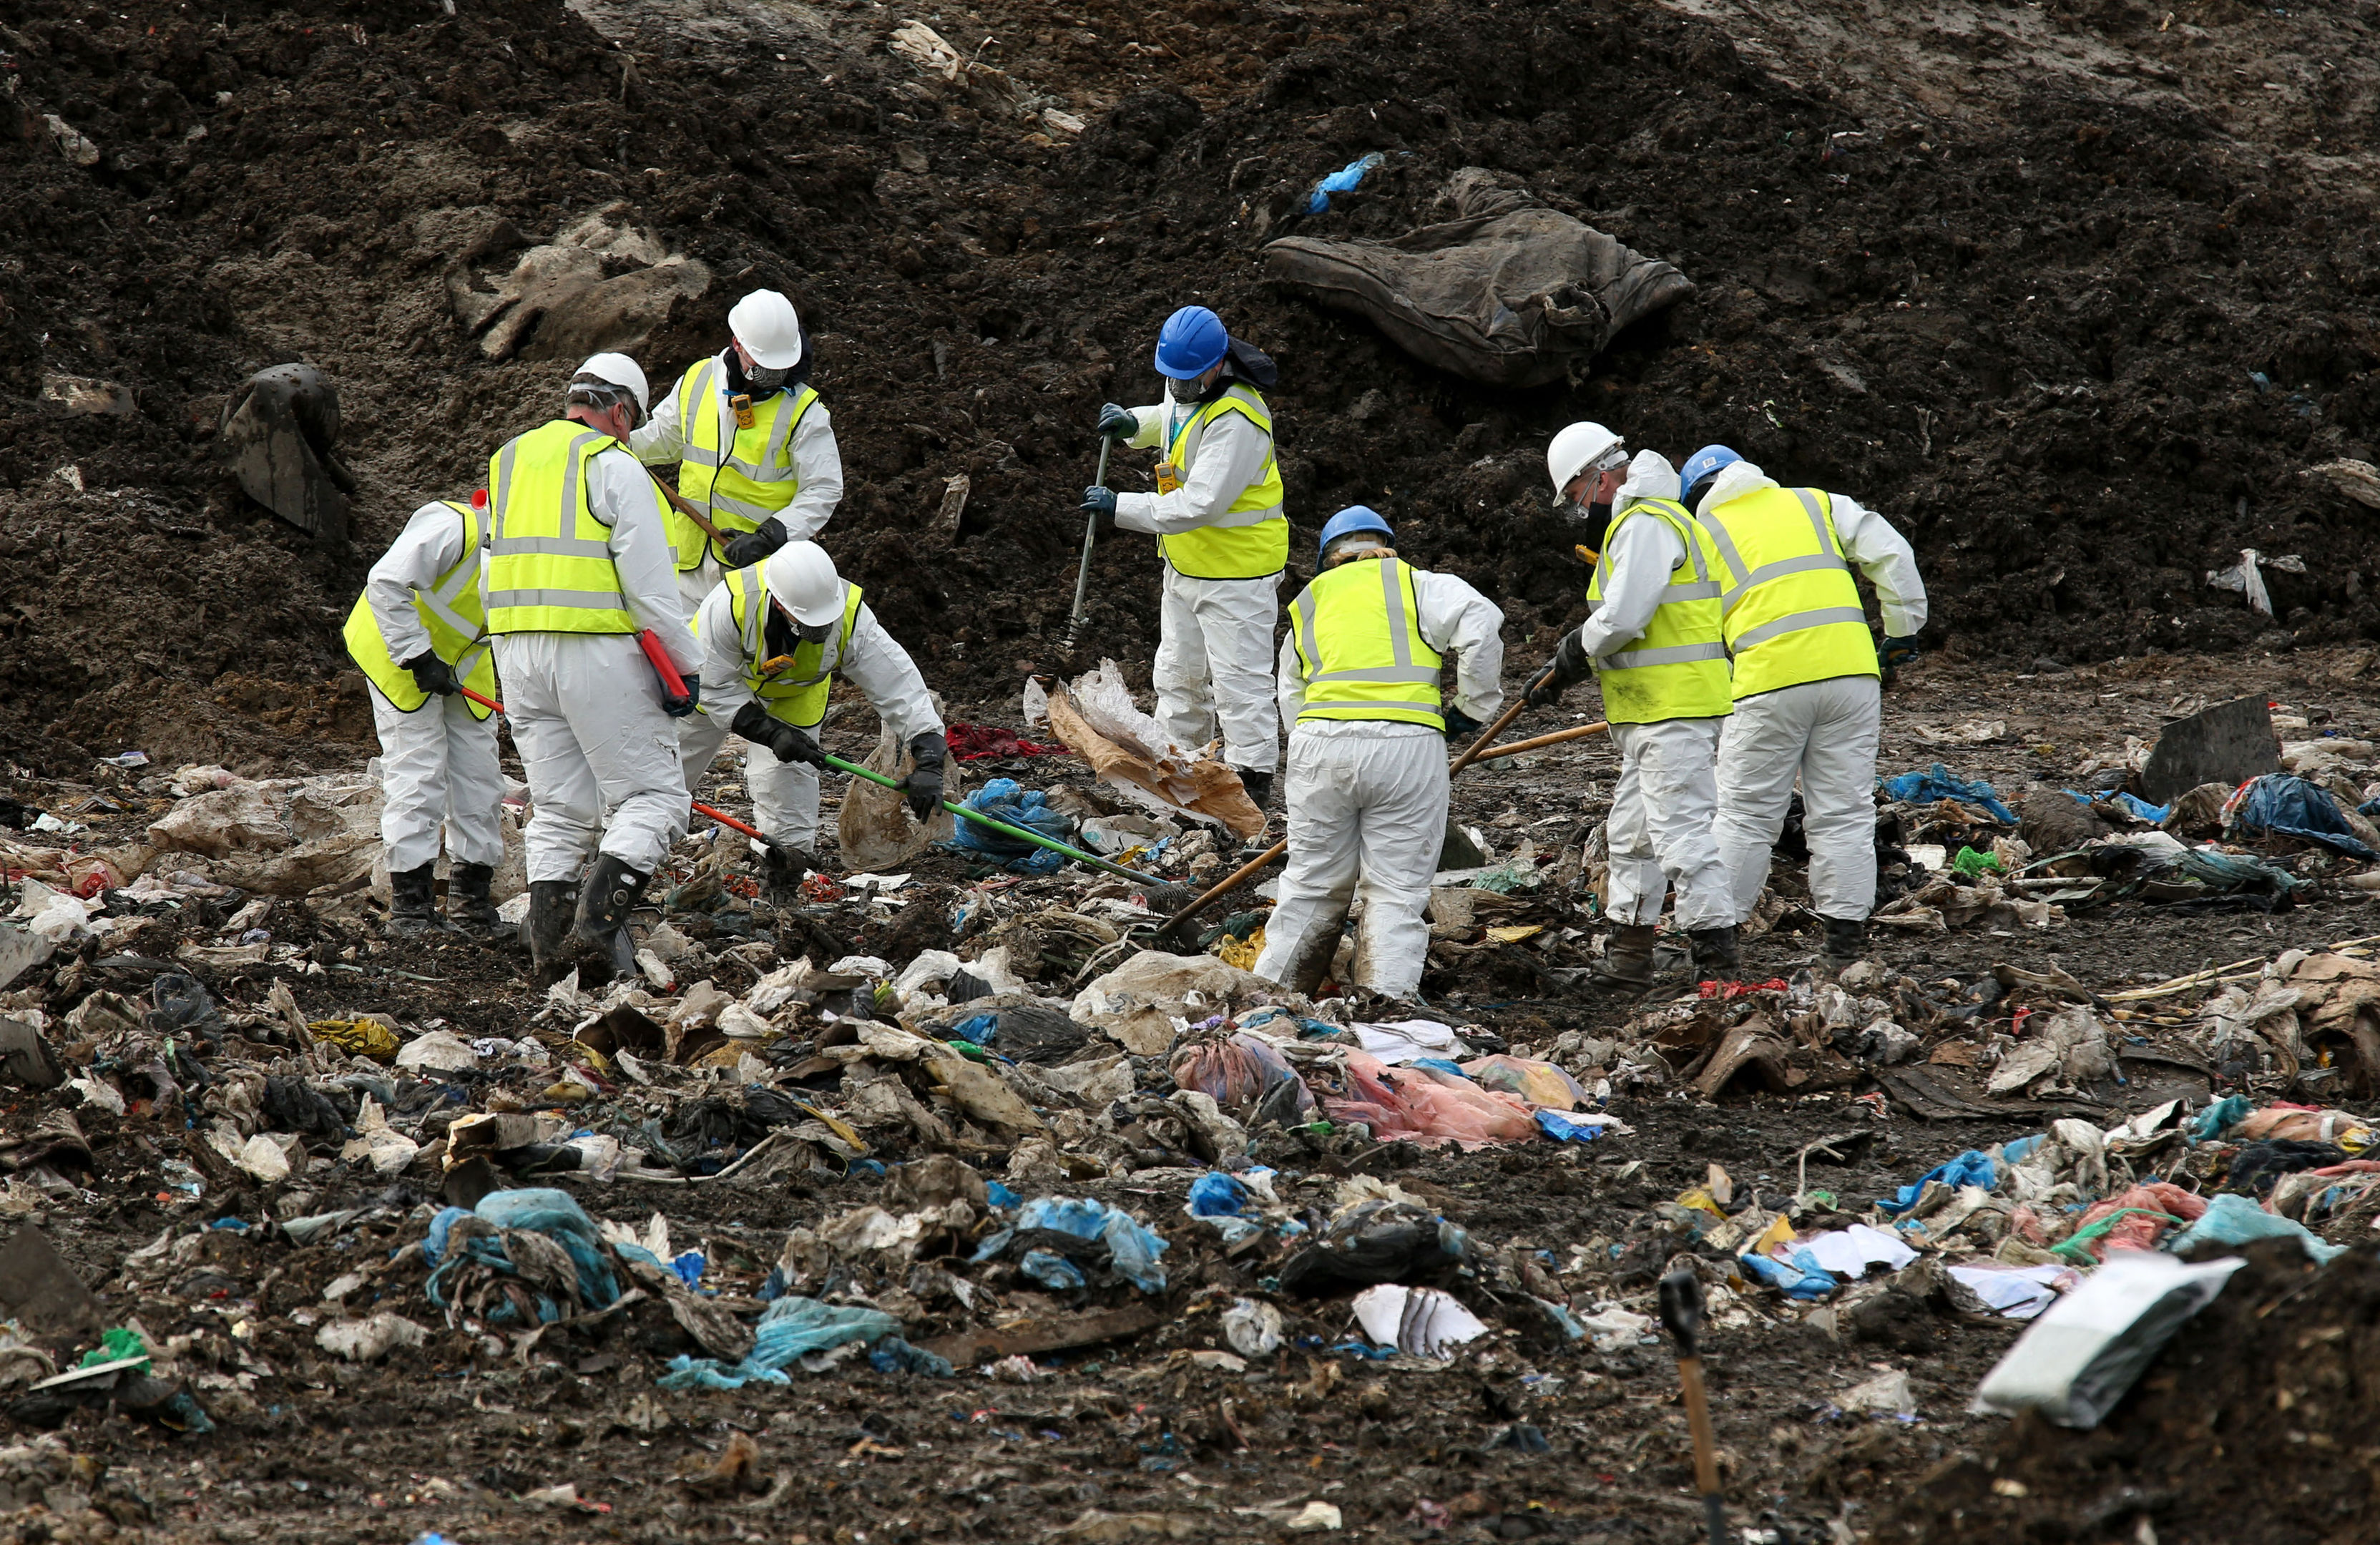 Police previously searched a landfill site in Milton, Cambridgeshire, for missing RAF gunner Corrie McKeague who was last seen on Saturday September 24 in Bury St Edmunds, Suffolk.